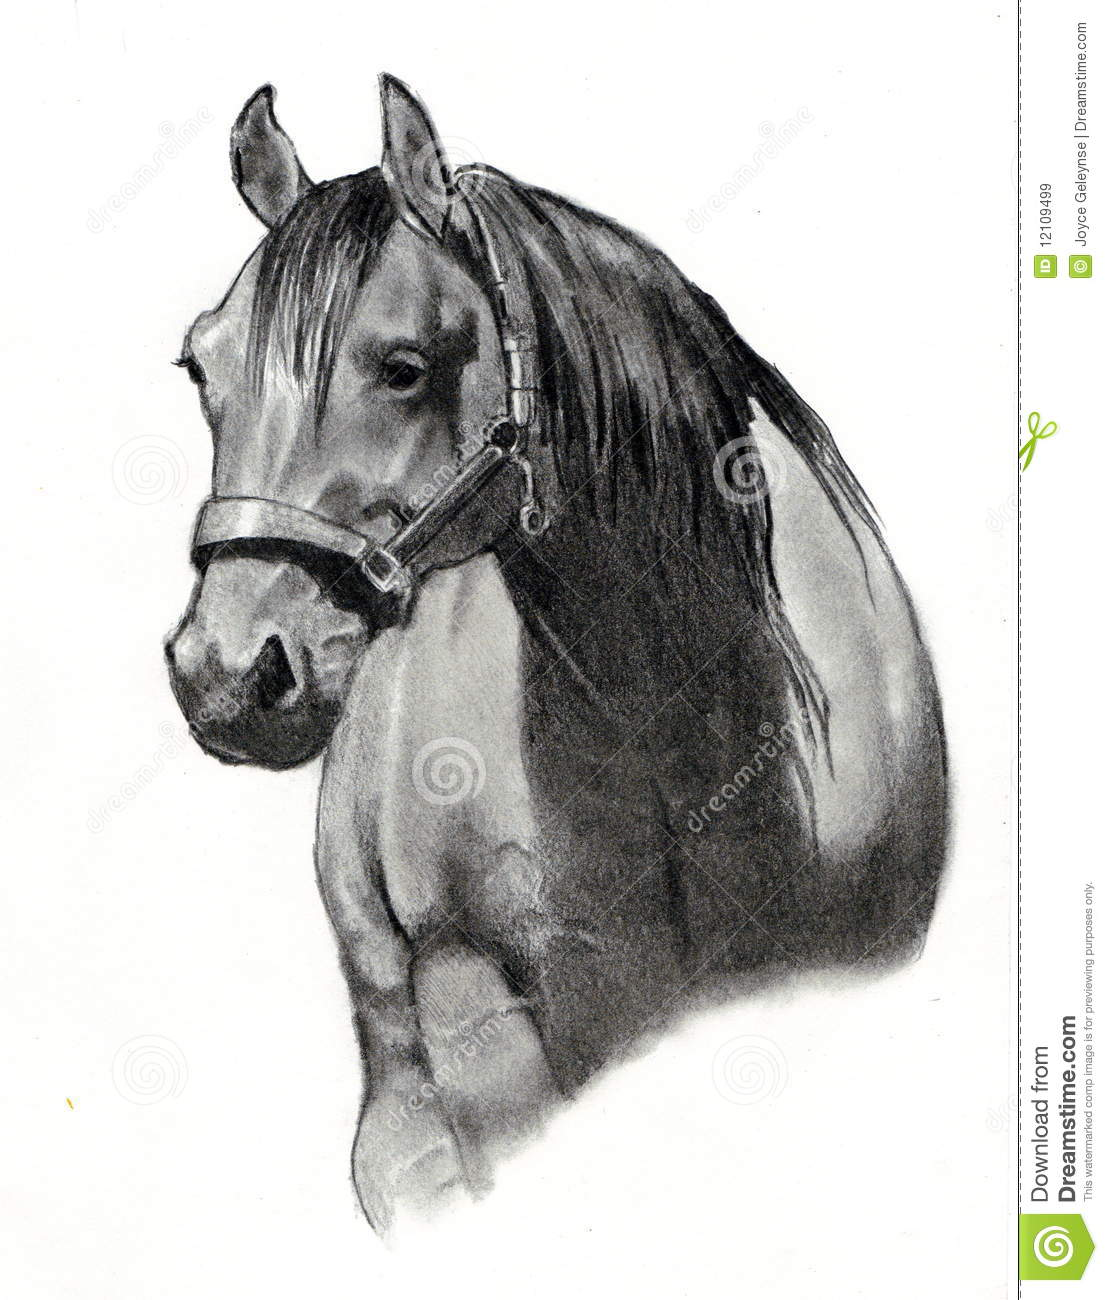 Drawing Horse Pencil